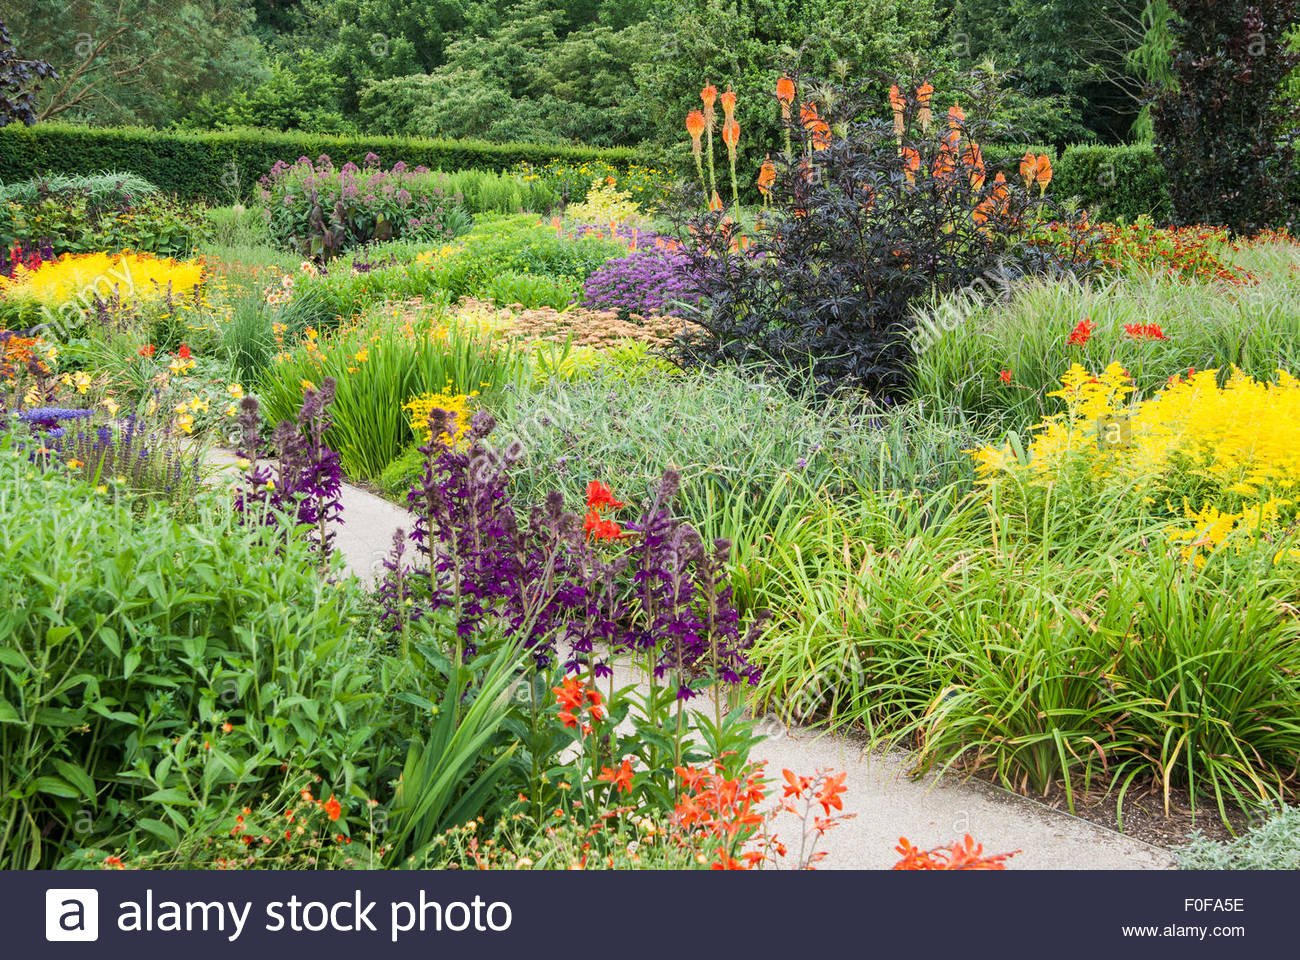 the square garden at rhs rosemoor is full of late summer colour stock photo royalty free image. Black Bedroom Furniture Sets. Home Design Ideas